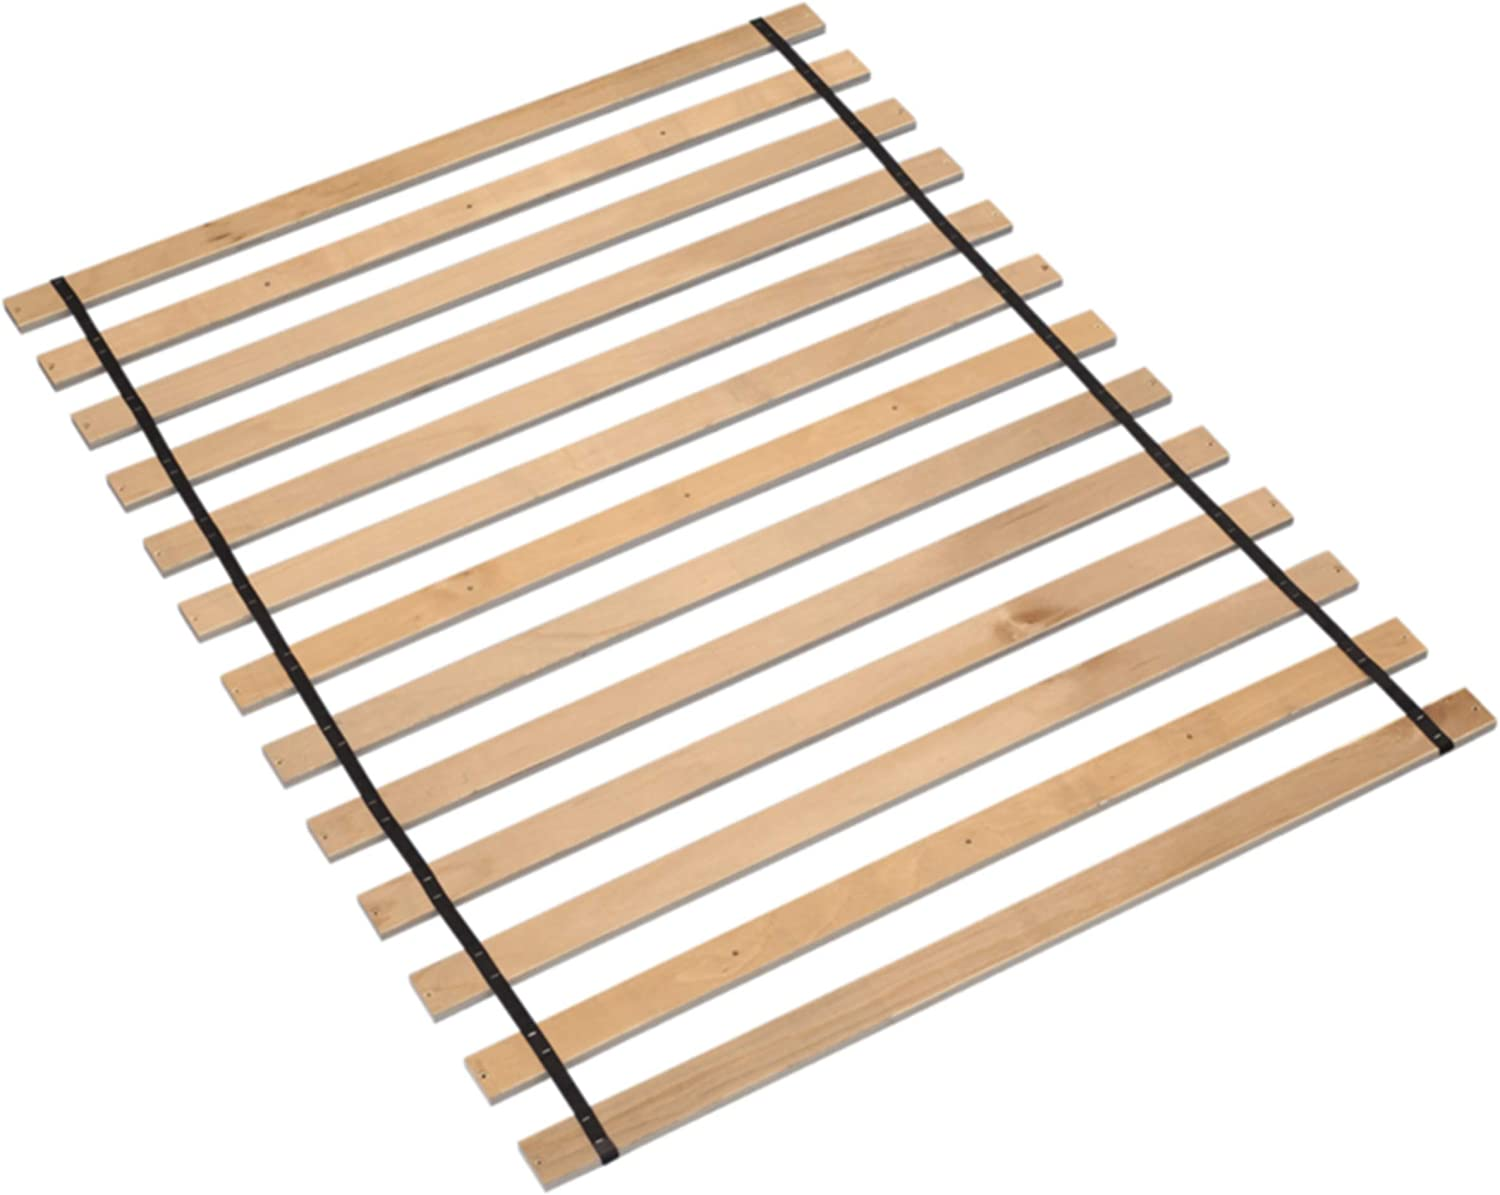 Ashley Furniture Signature Design - Frames and Rails Collection - Roll Slats - Component Piece - Queen Size - Brown